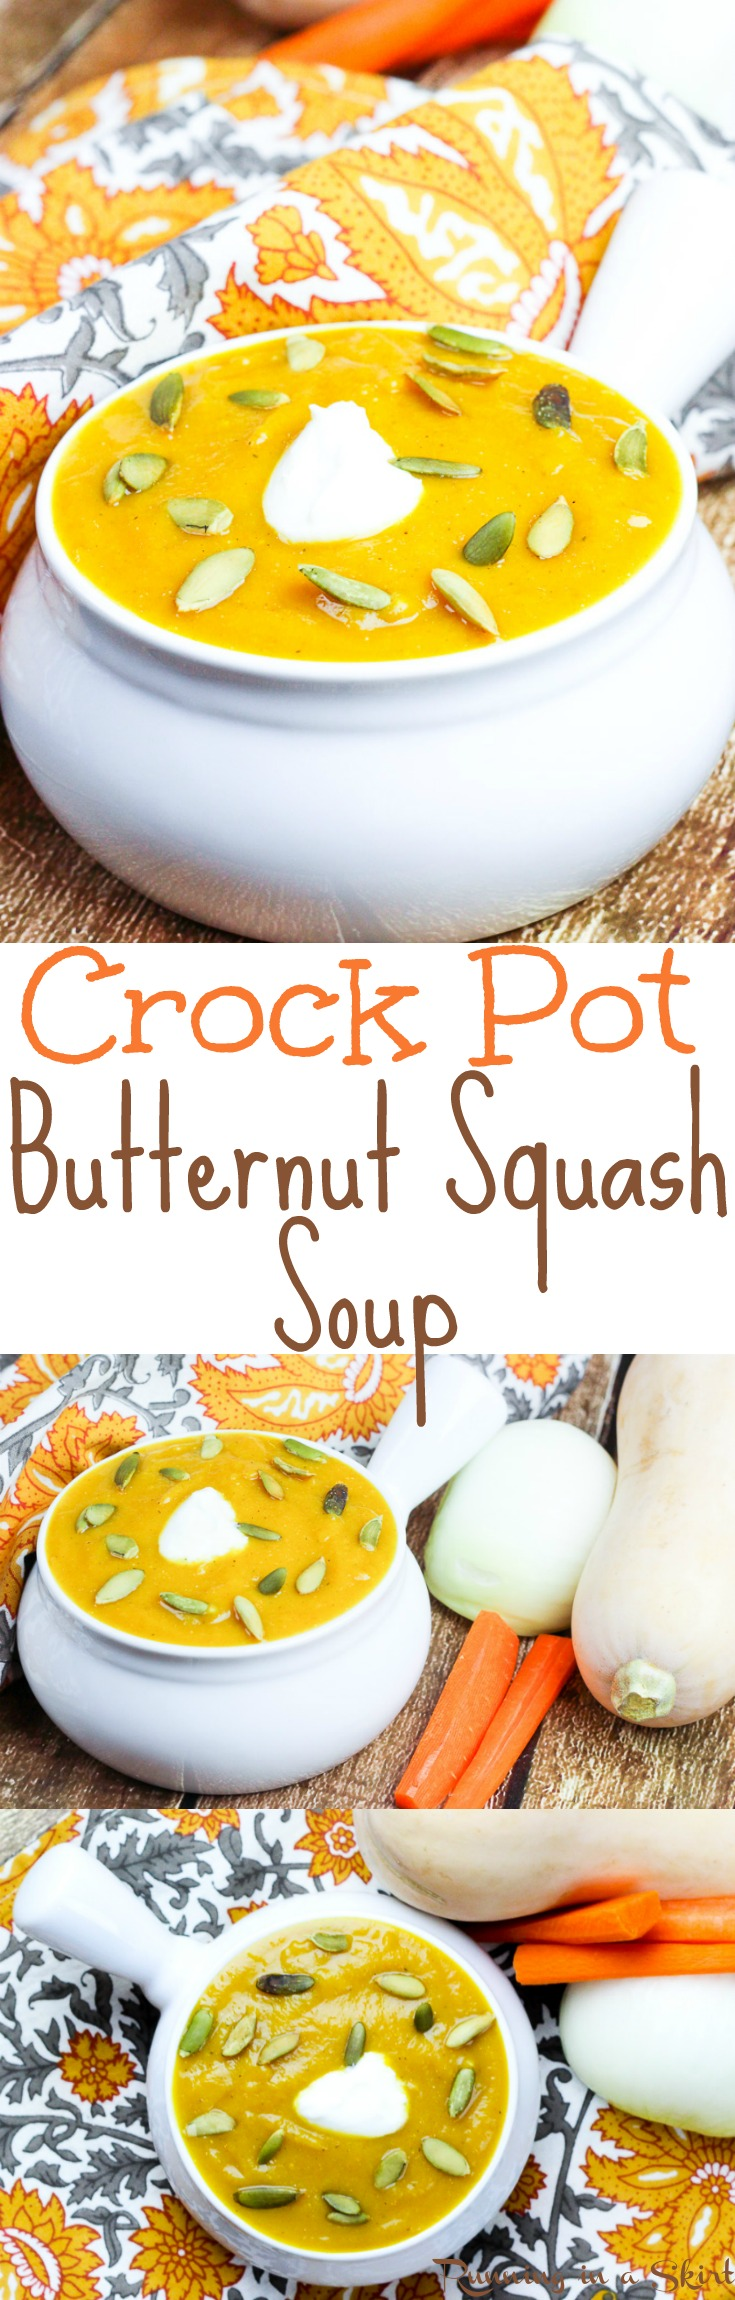 Crock Pot Butternut Squash Soup recipe. Topped with pumpkin seeds and greek yogurt and packed with hidden veggies and an apple! A healthy, vegetarian comfort foods recipe for fall! Includes step by step instructions on how to cut a butternut squash without hurting your fingers | Running in a Skirt via @juliewunder